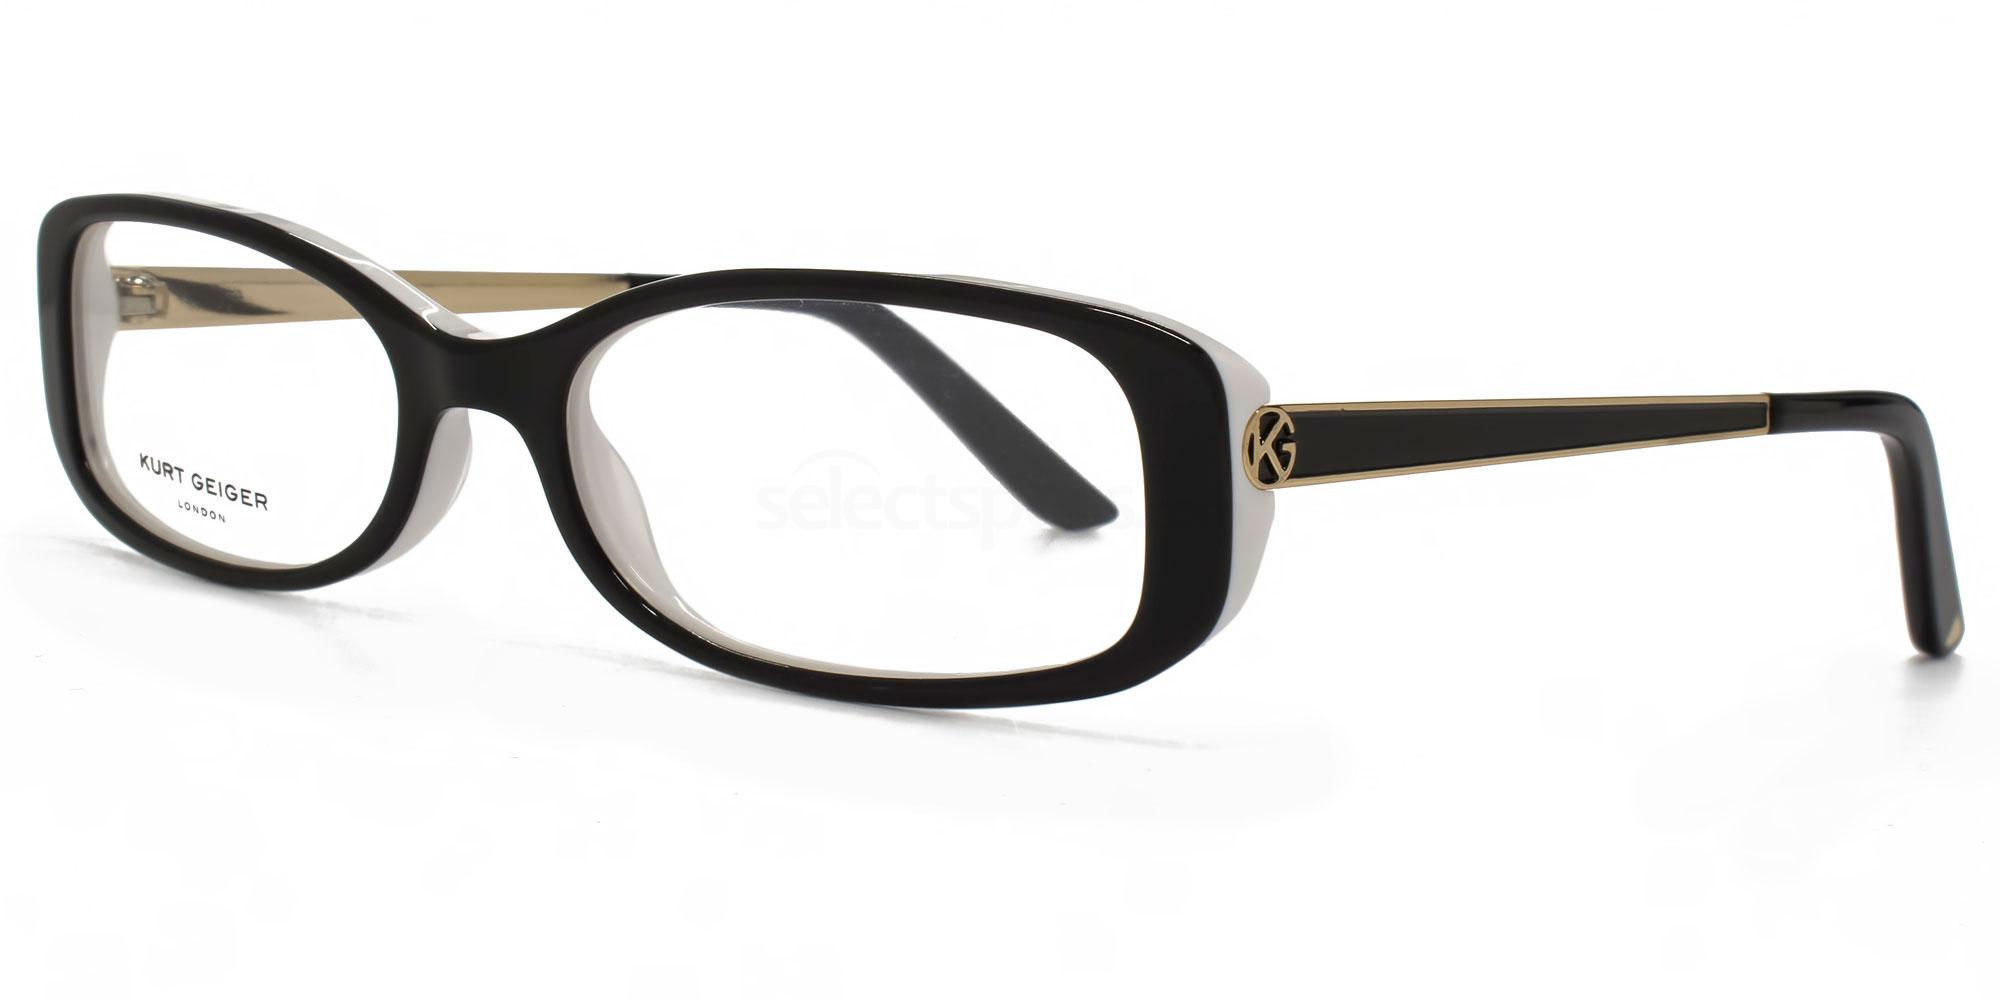 BLK KGS004 - SARAH Glasses, Kurt Geiger London